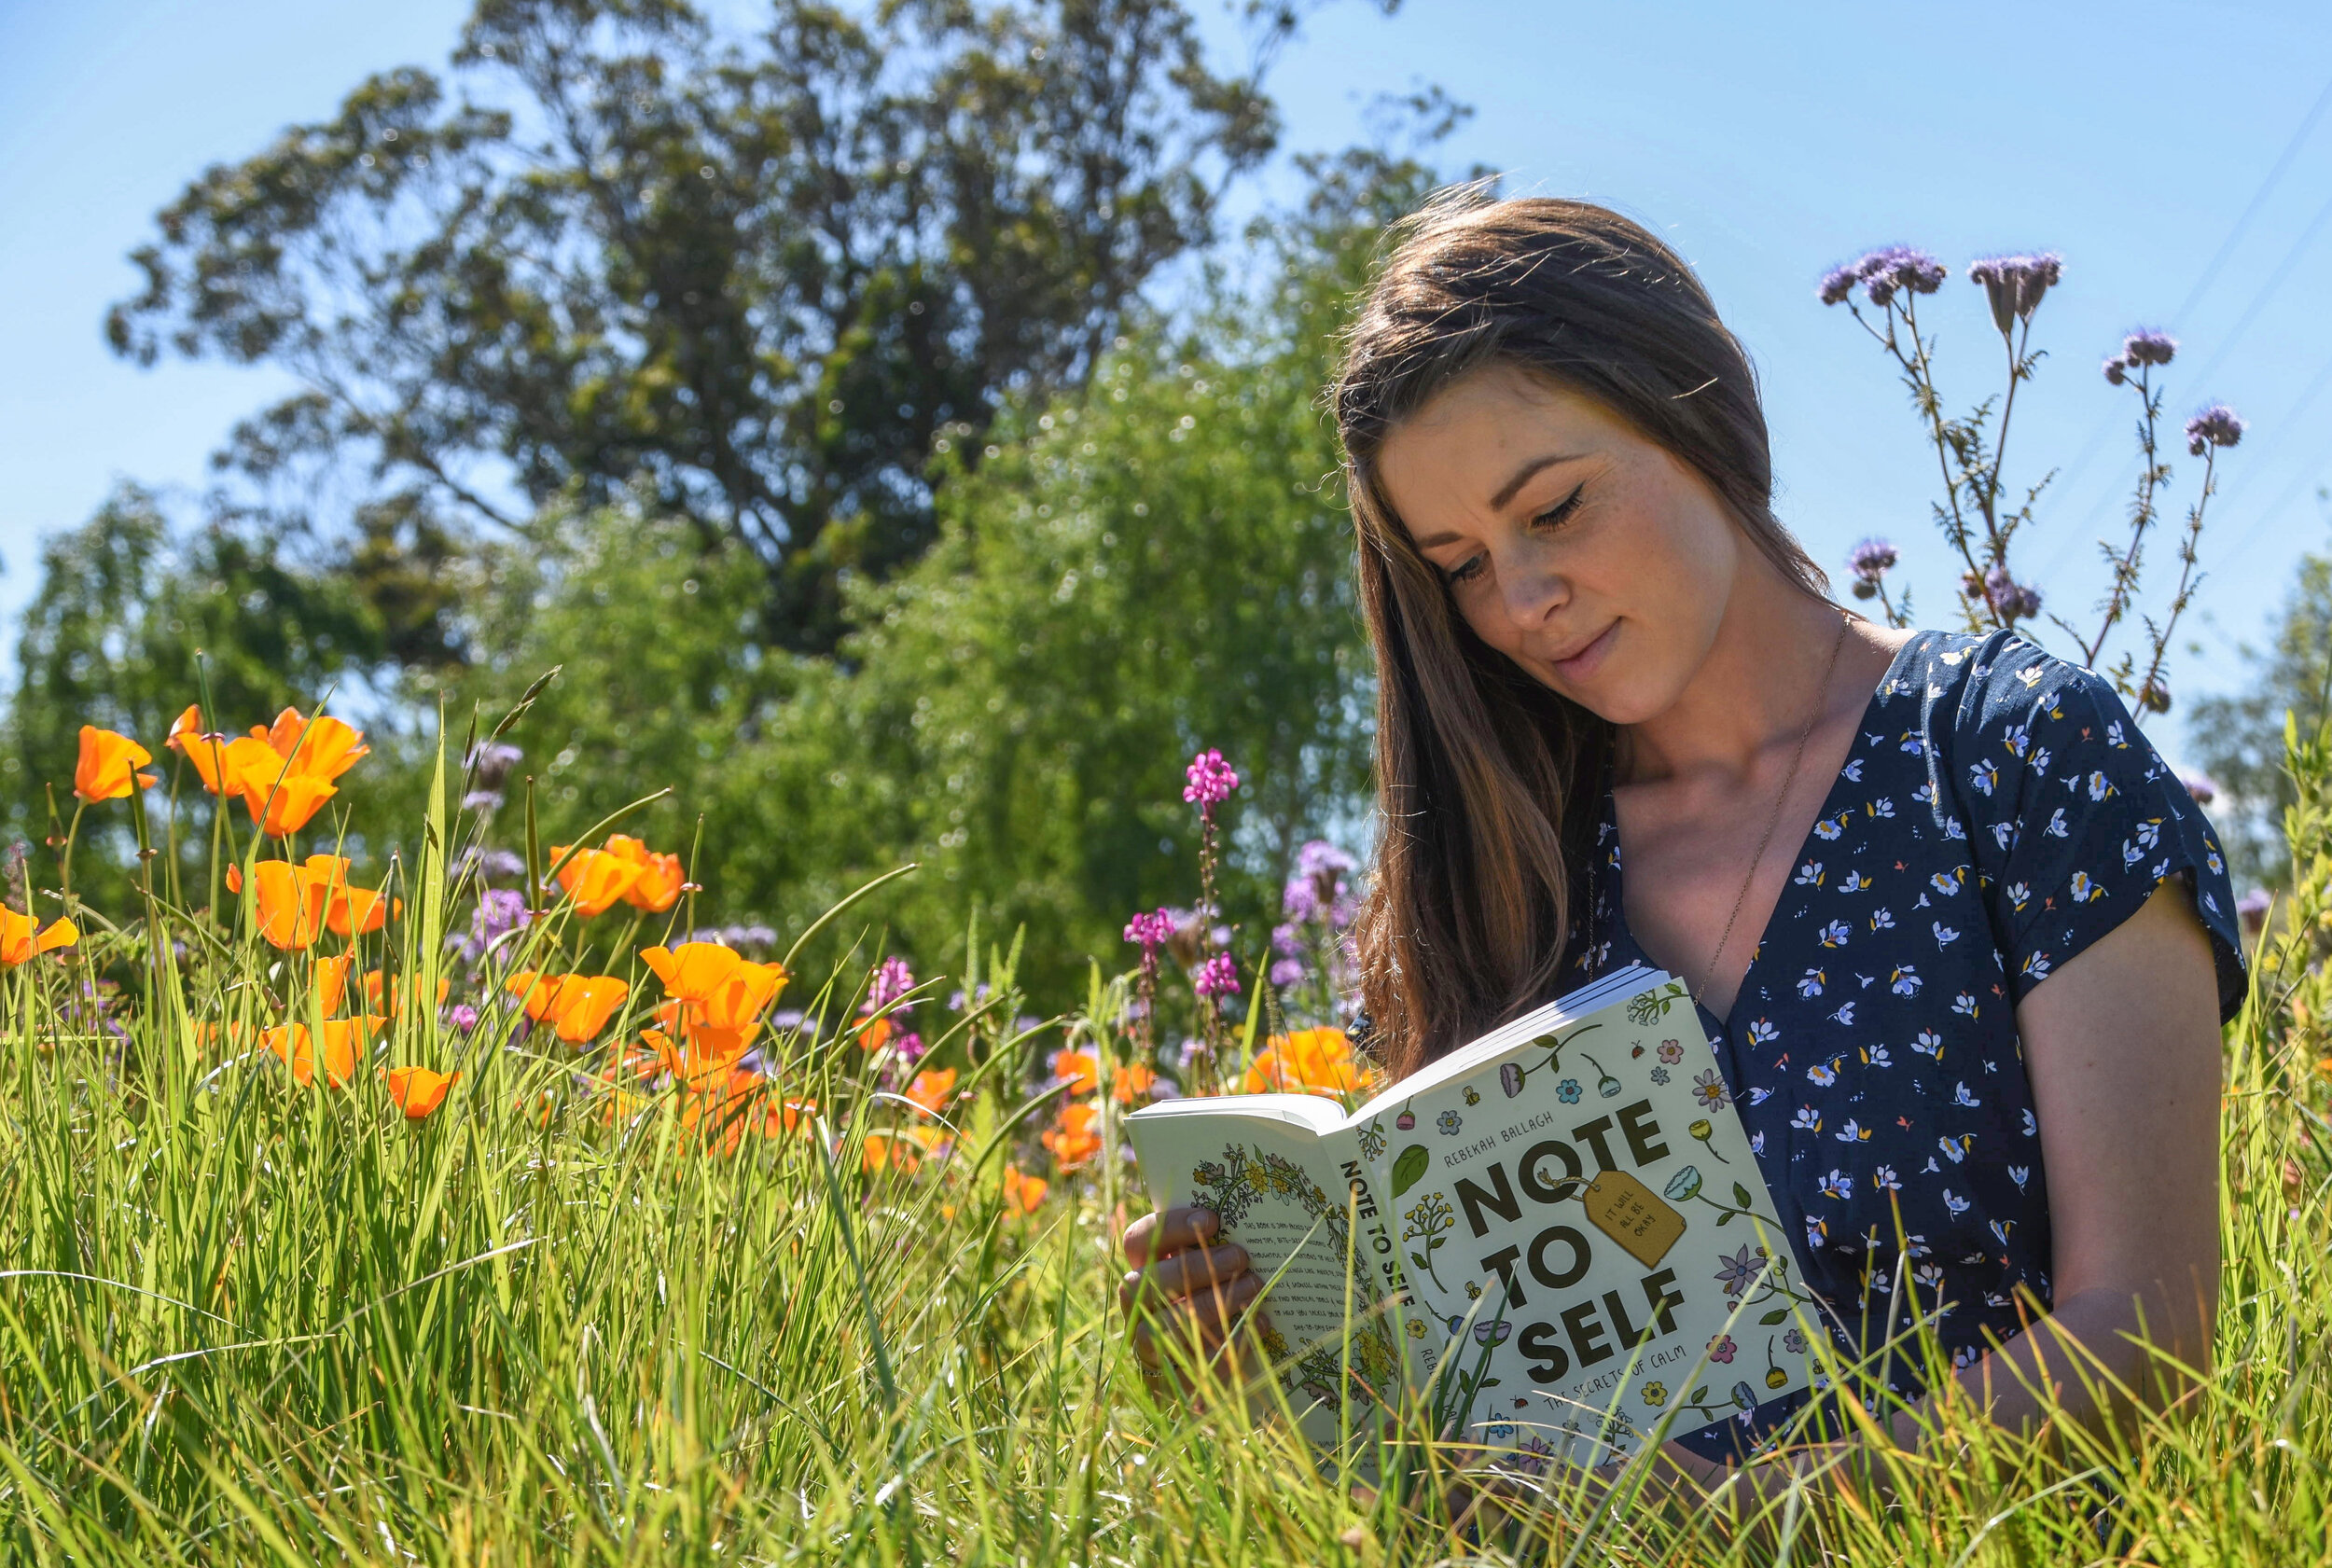 """Rebekah reading her book """"Note To Self"""" in a field of orange and purple flowers and grass"""